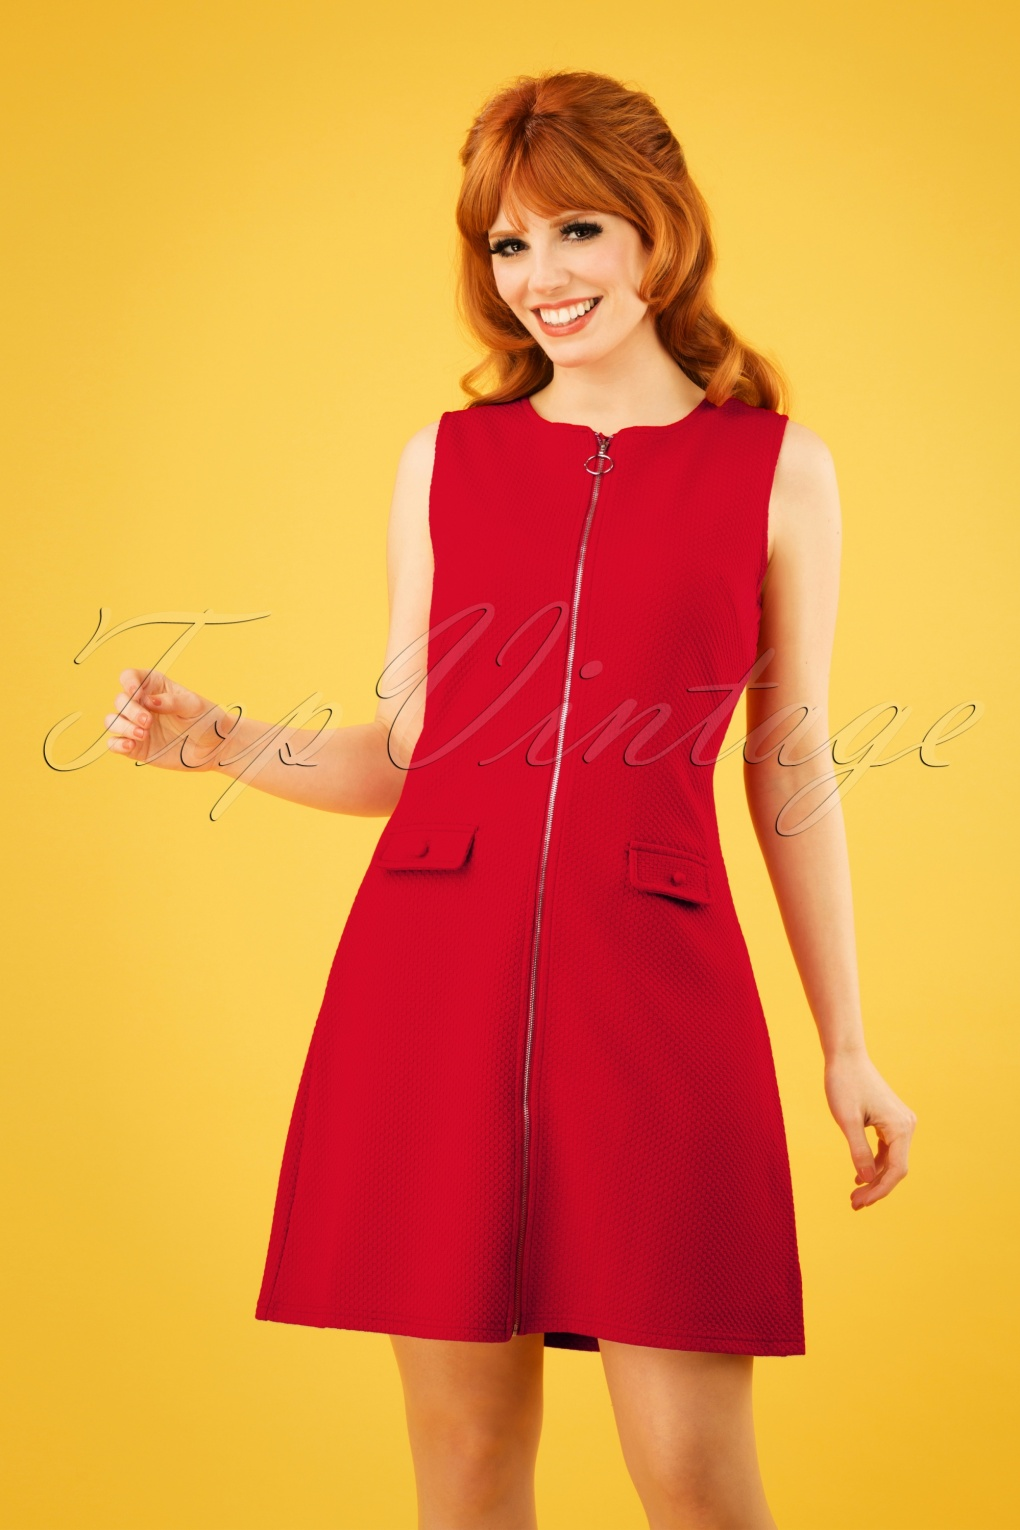 1960s Mad Men Dresses and Clothing Styles 60s Groovy Gal Dress in Lipstick Red £34.38 AT vintagedancer.com